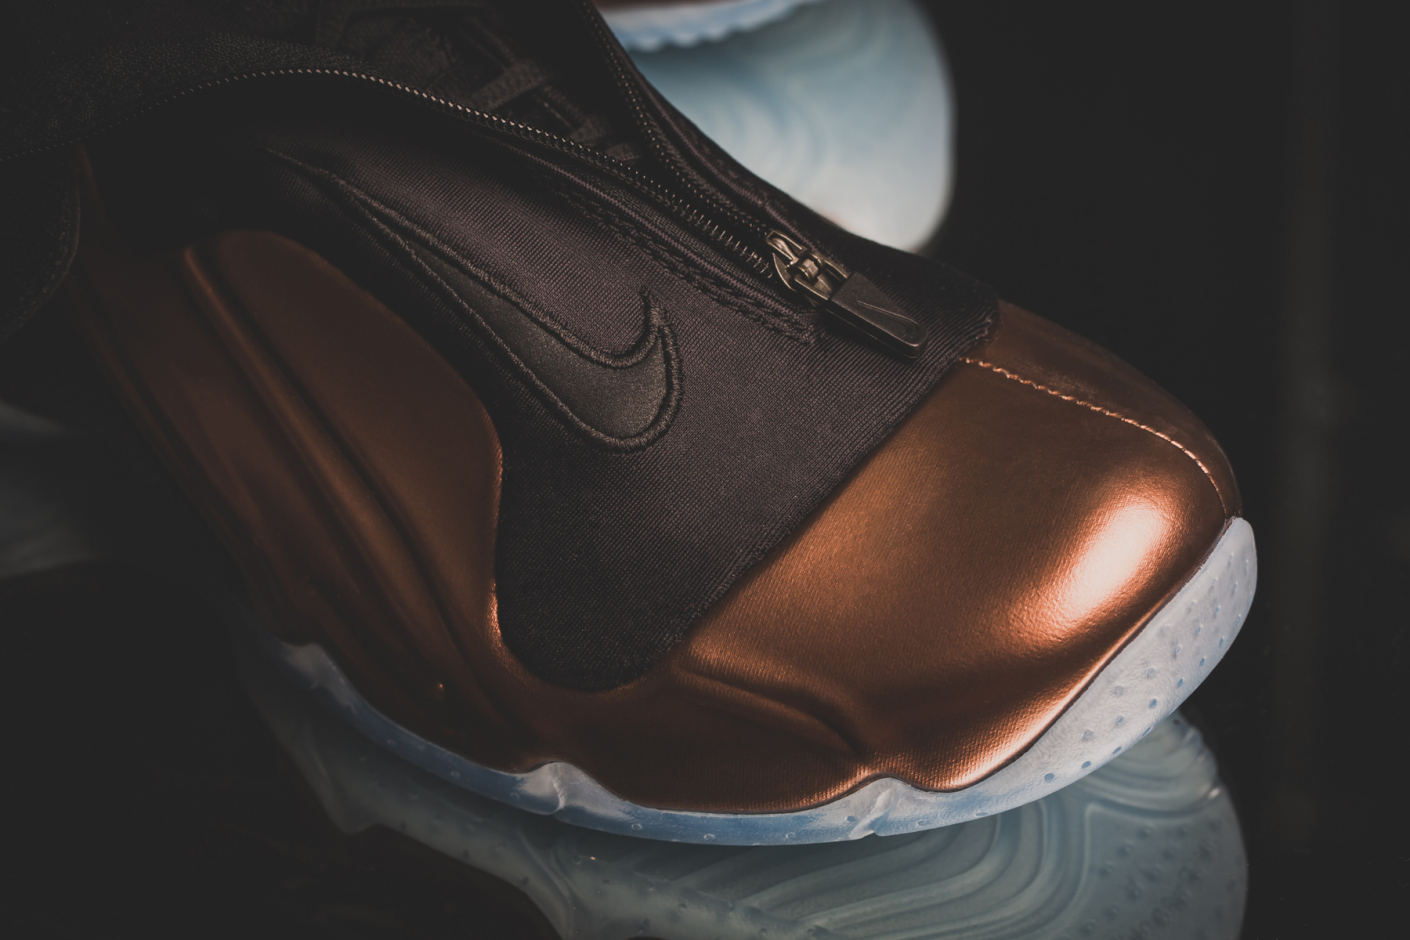 Copper Nike Flightposite 8